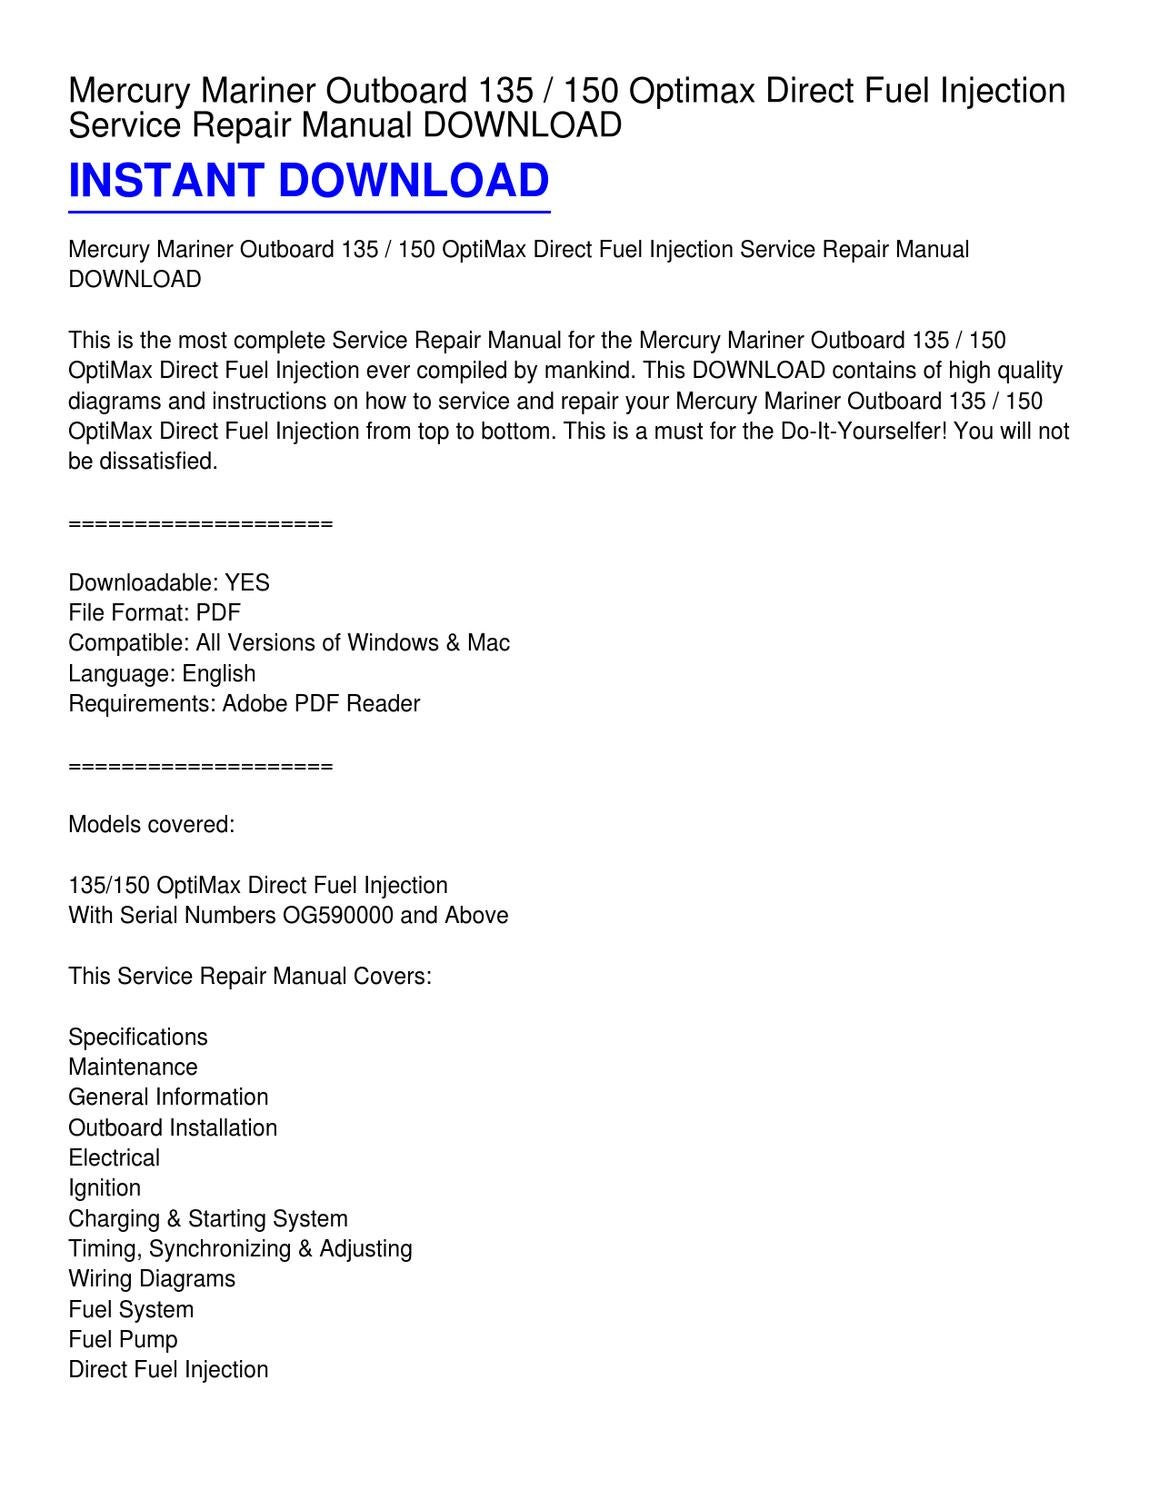 mercury mariner outboard 135 _ 150 optimax direct fuel injection service  repair manual download by kevin fowler - issuu